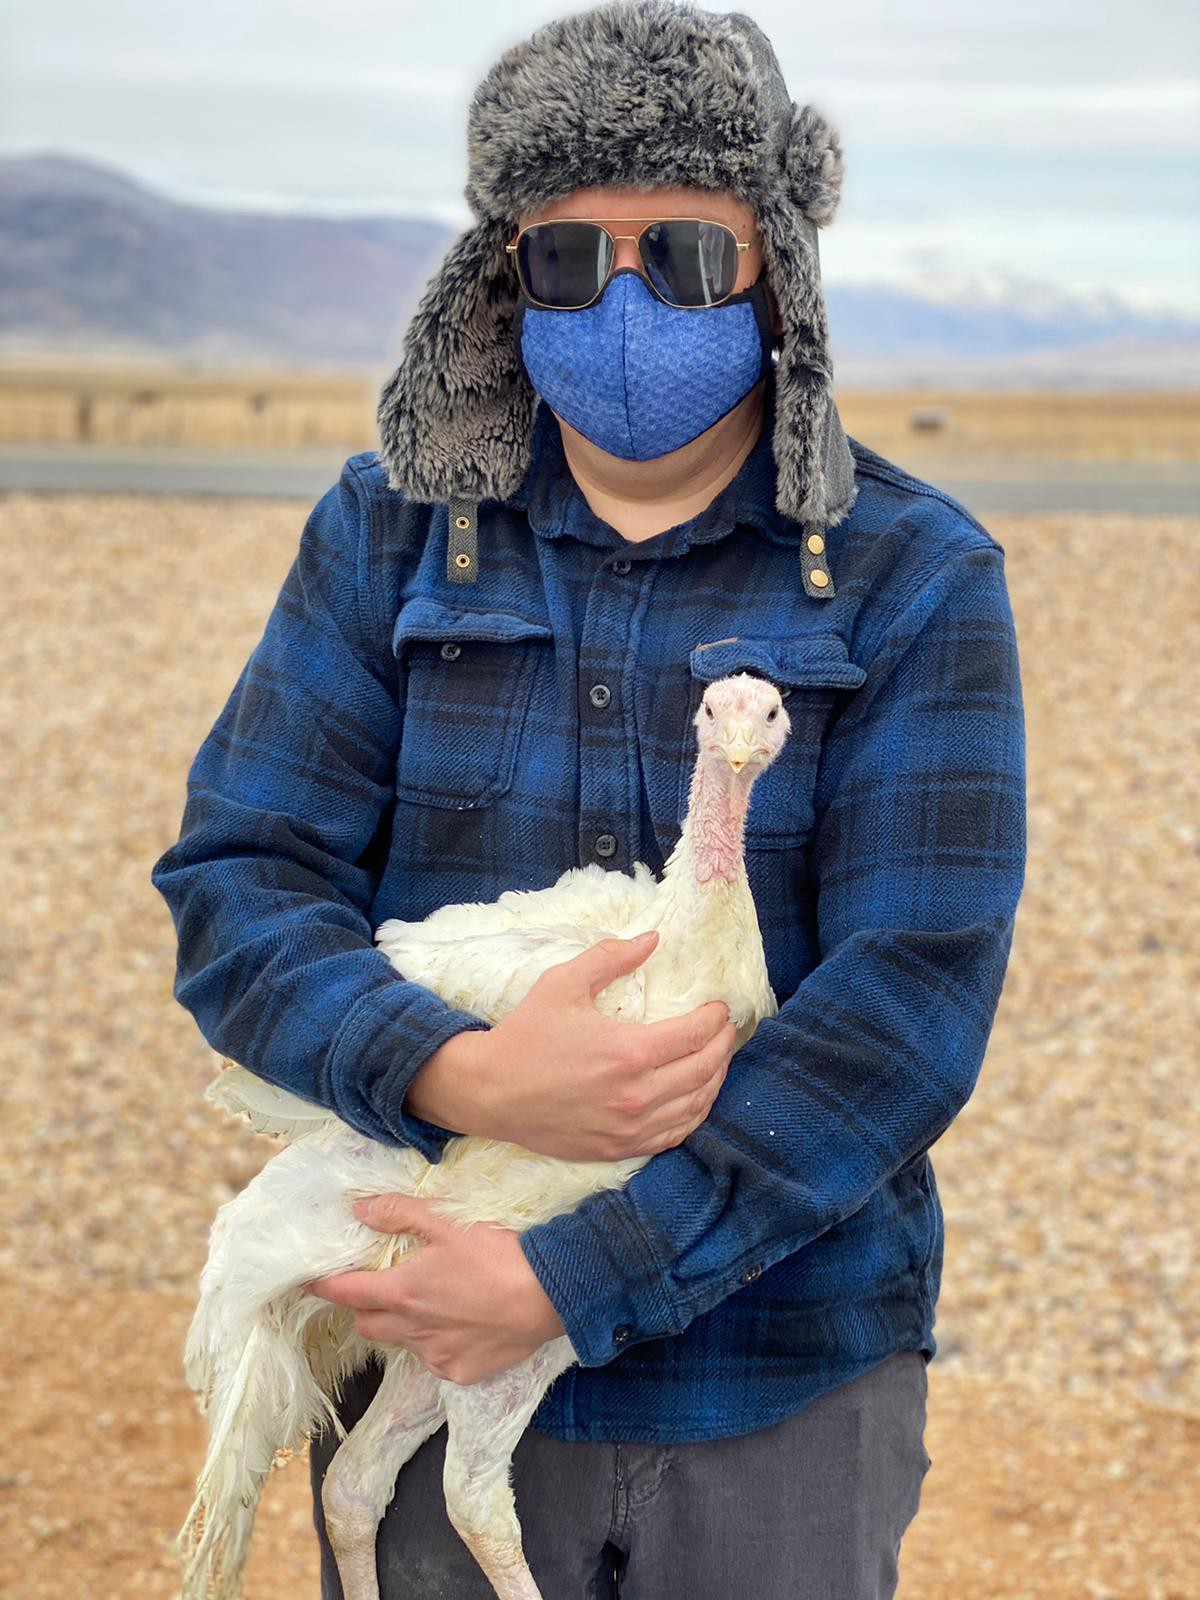 A person in a blue flannel shirt, mask, and hat holds a cute young white turkey who seems to be looking at the camera